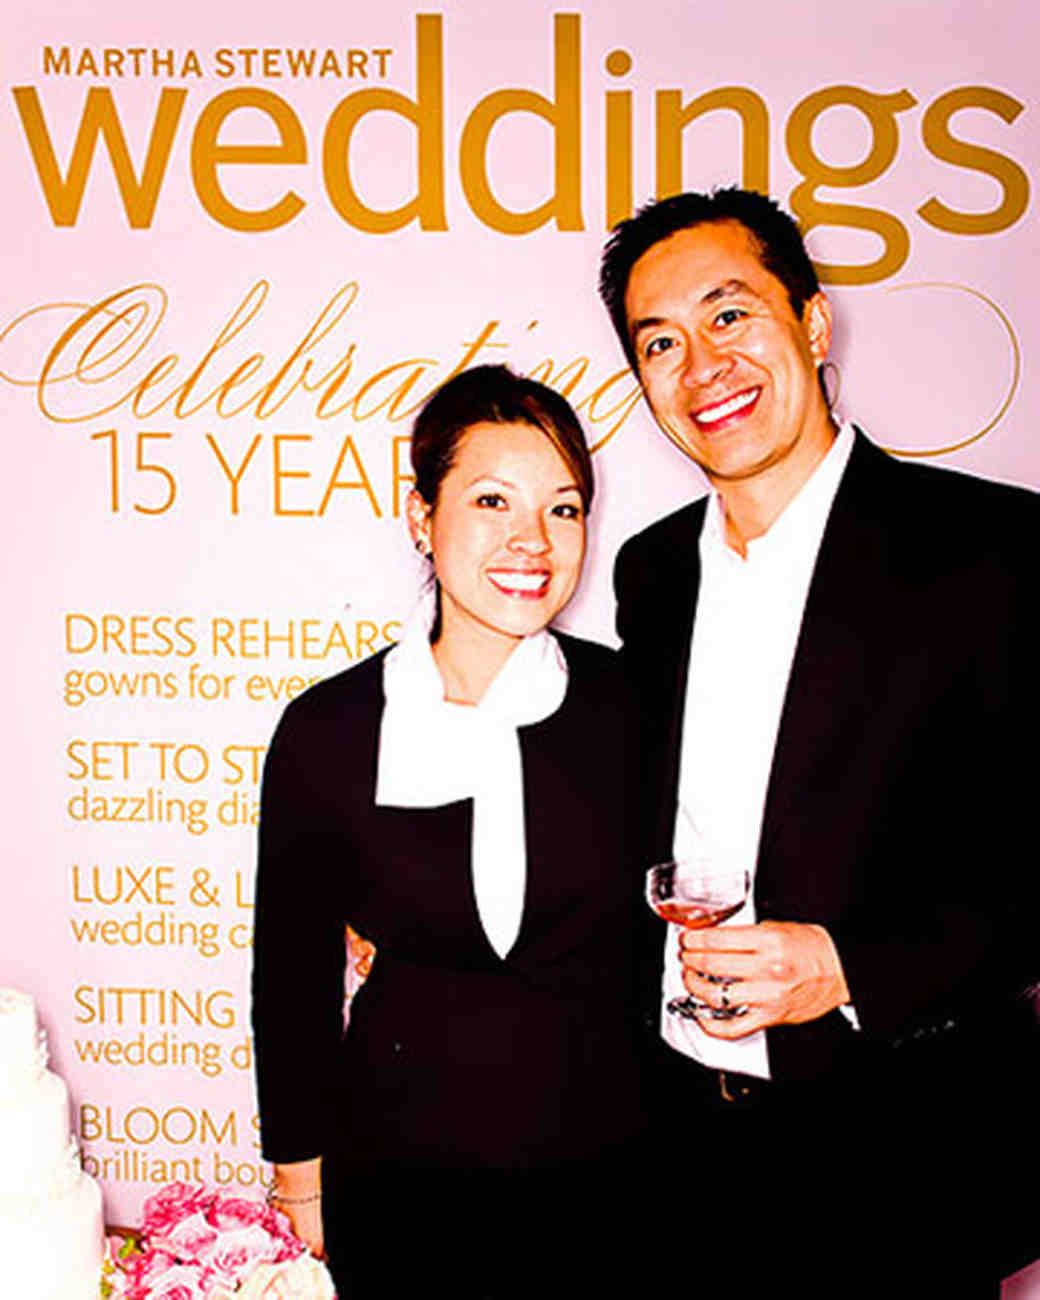 msw_15party_sandy_rick_yeung.jpg